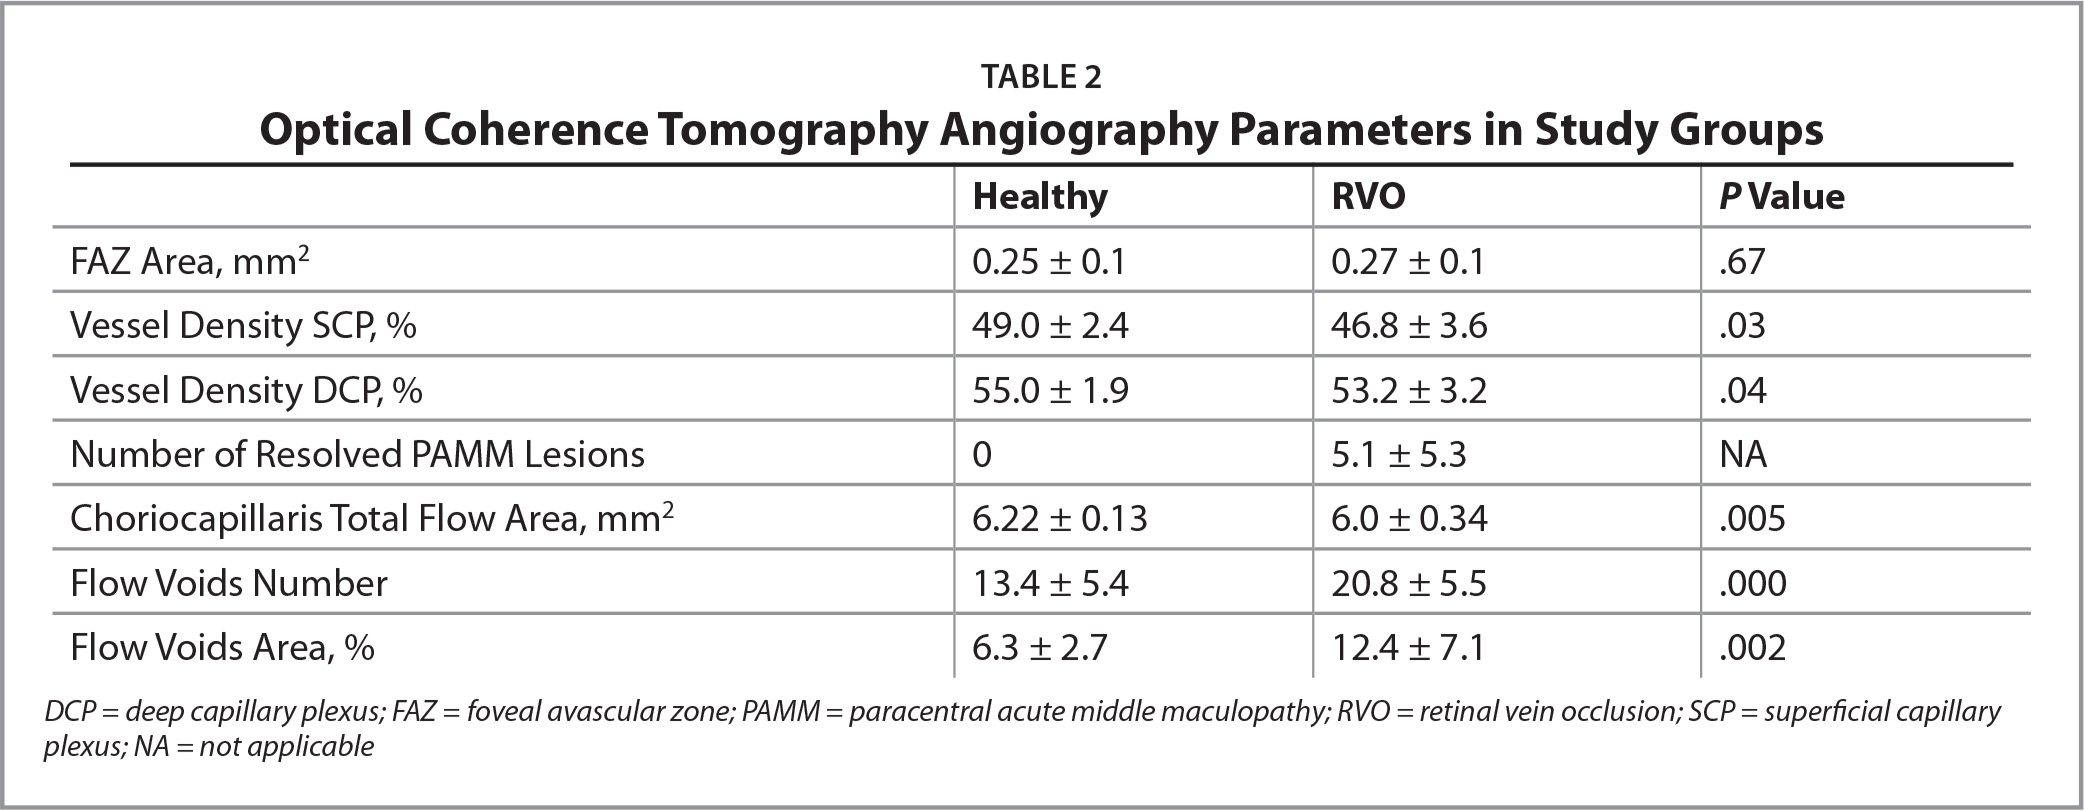 Optical Coherence Tomography Angiography Parameters in Study Groups